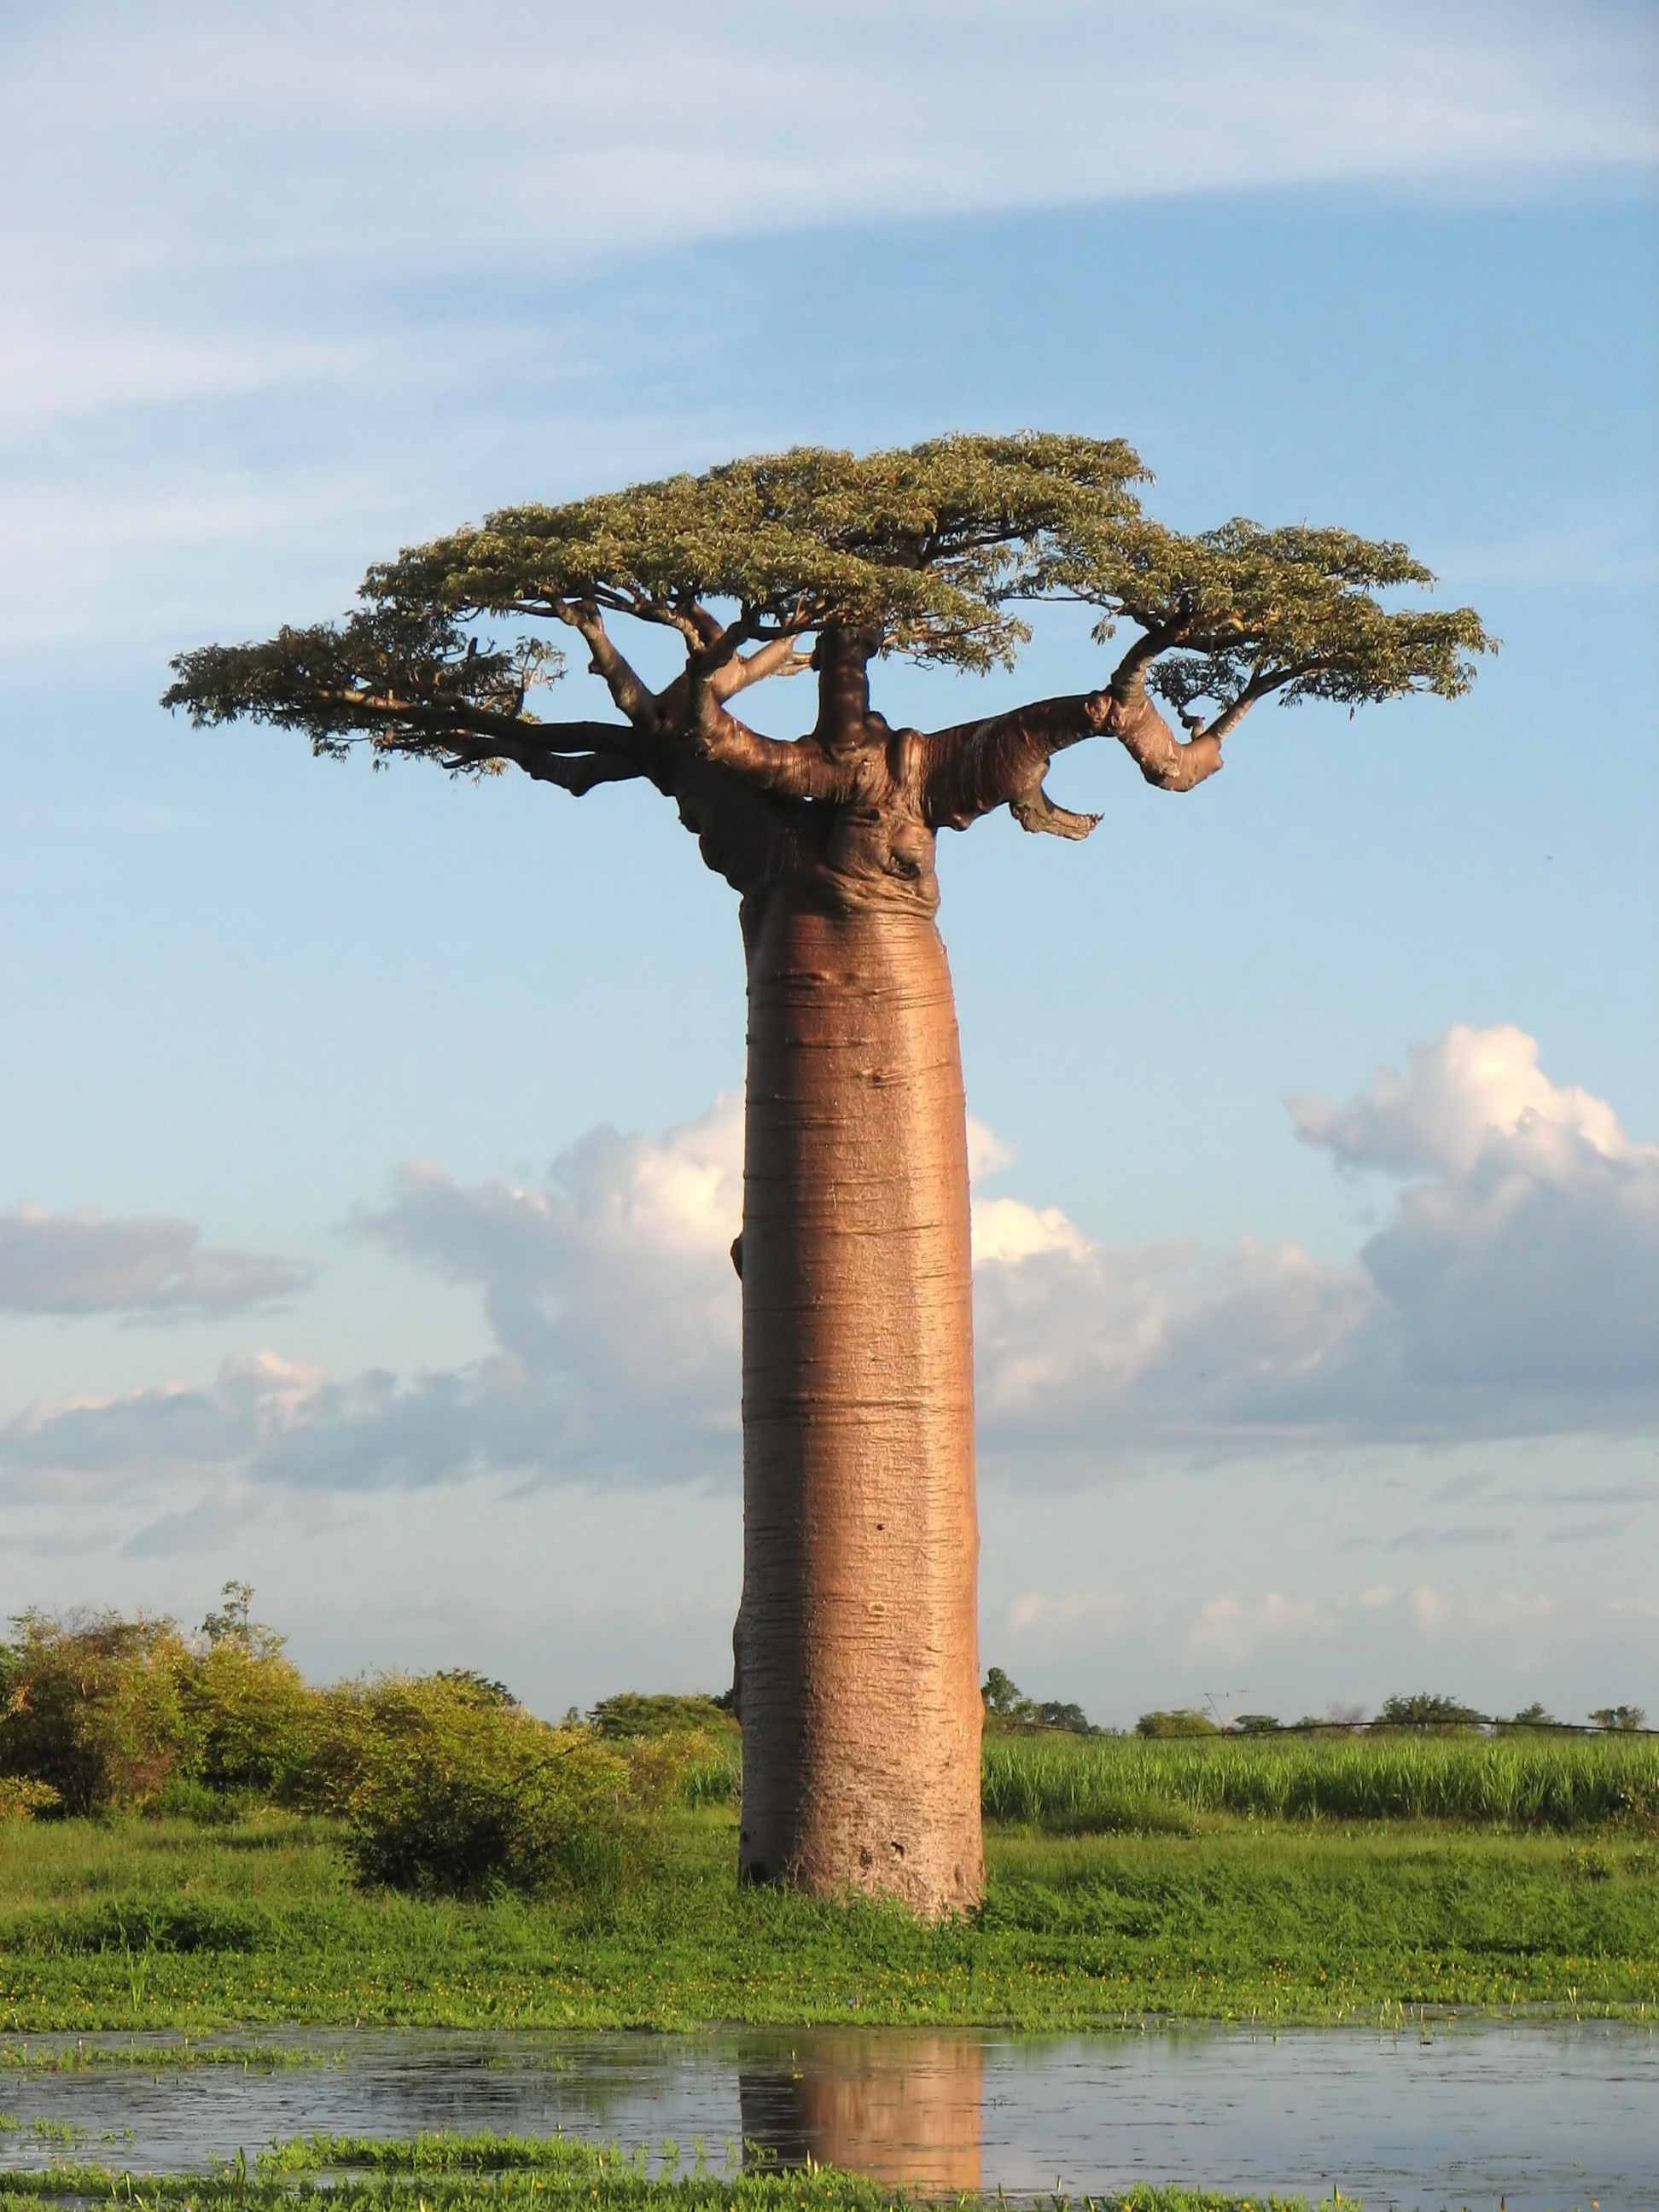 Grandidier's Baobab (Adansonia grandidieri). Photo taken near Morondava, Madagascar, on March 14, 2007.